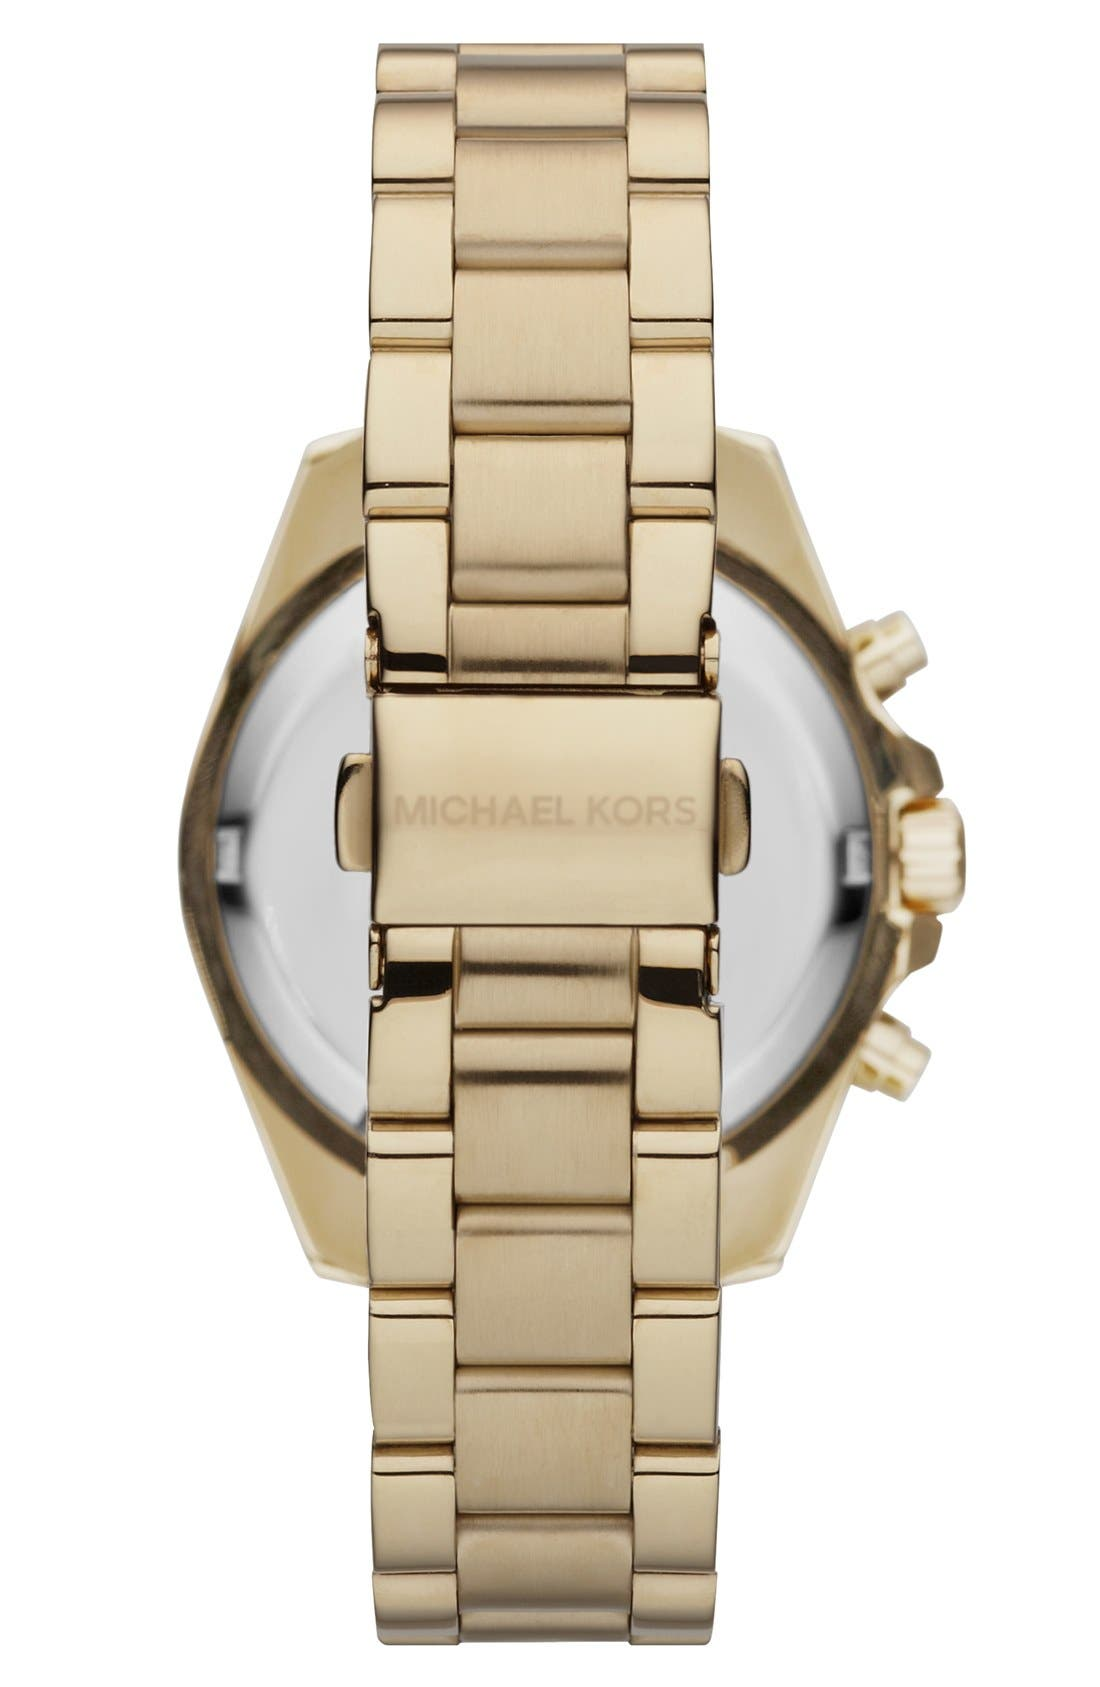 Michael Kors Womens Clothing Shoes Accessories Nordstrom